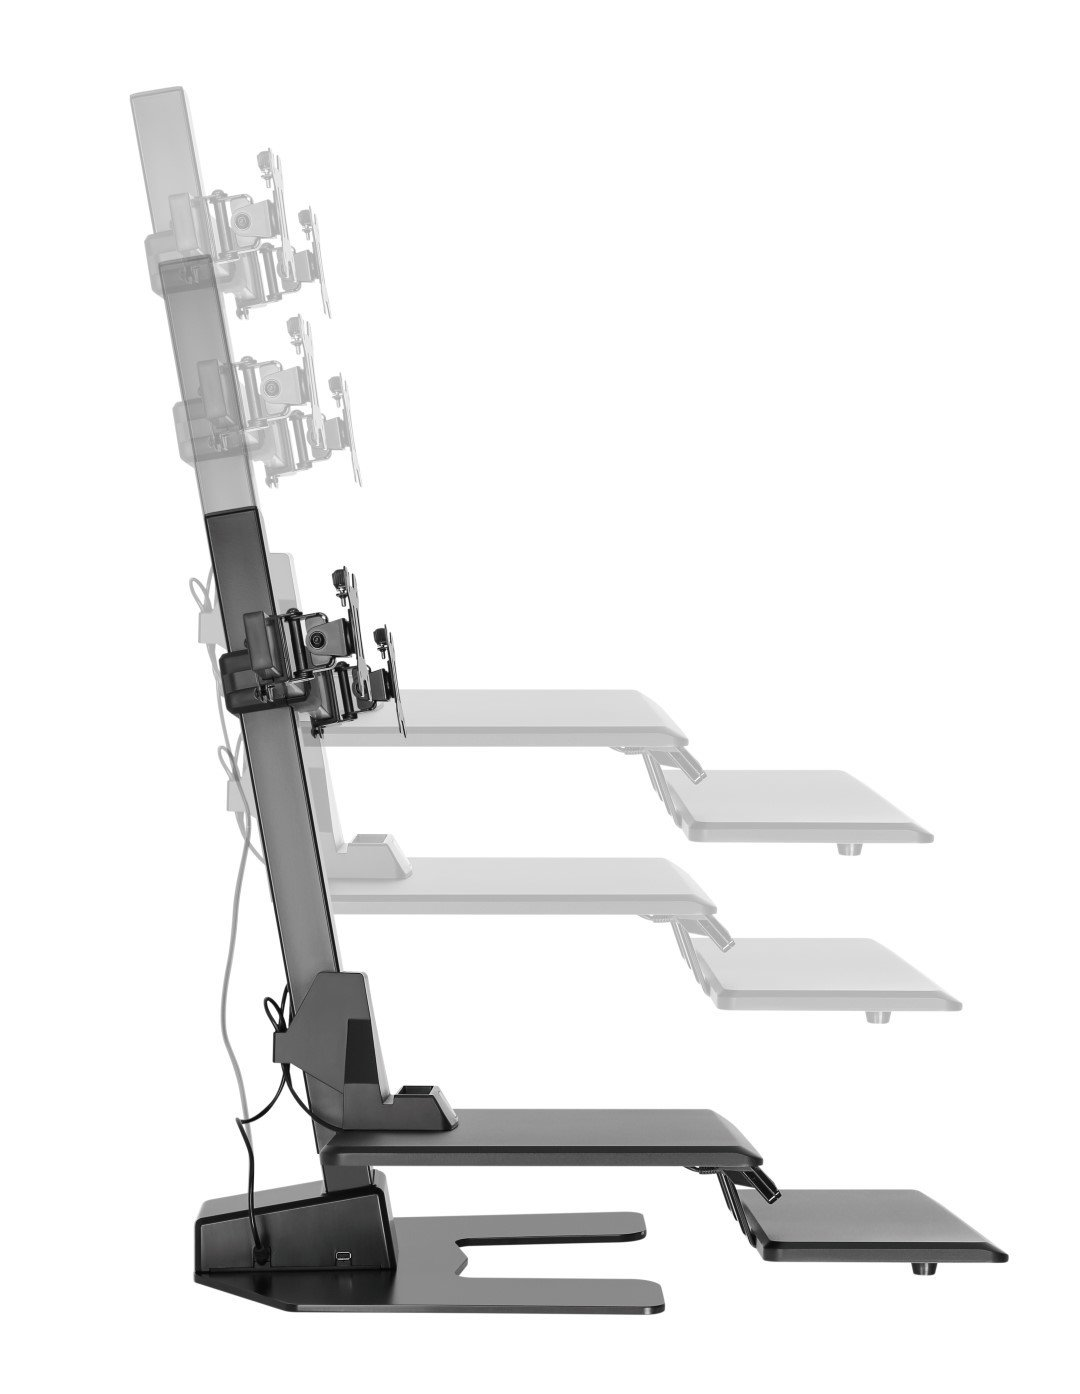 E-Lift D side view showing height range